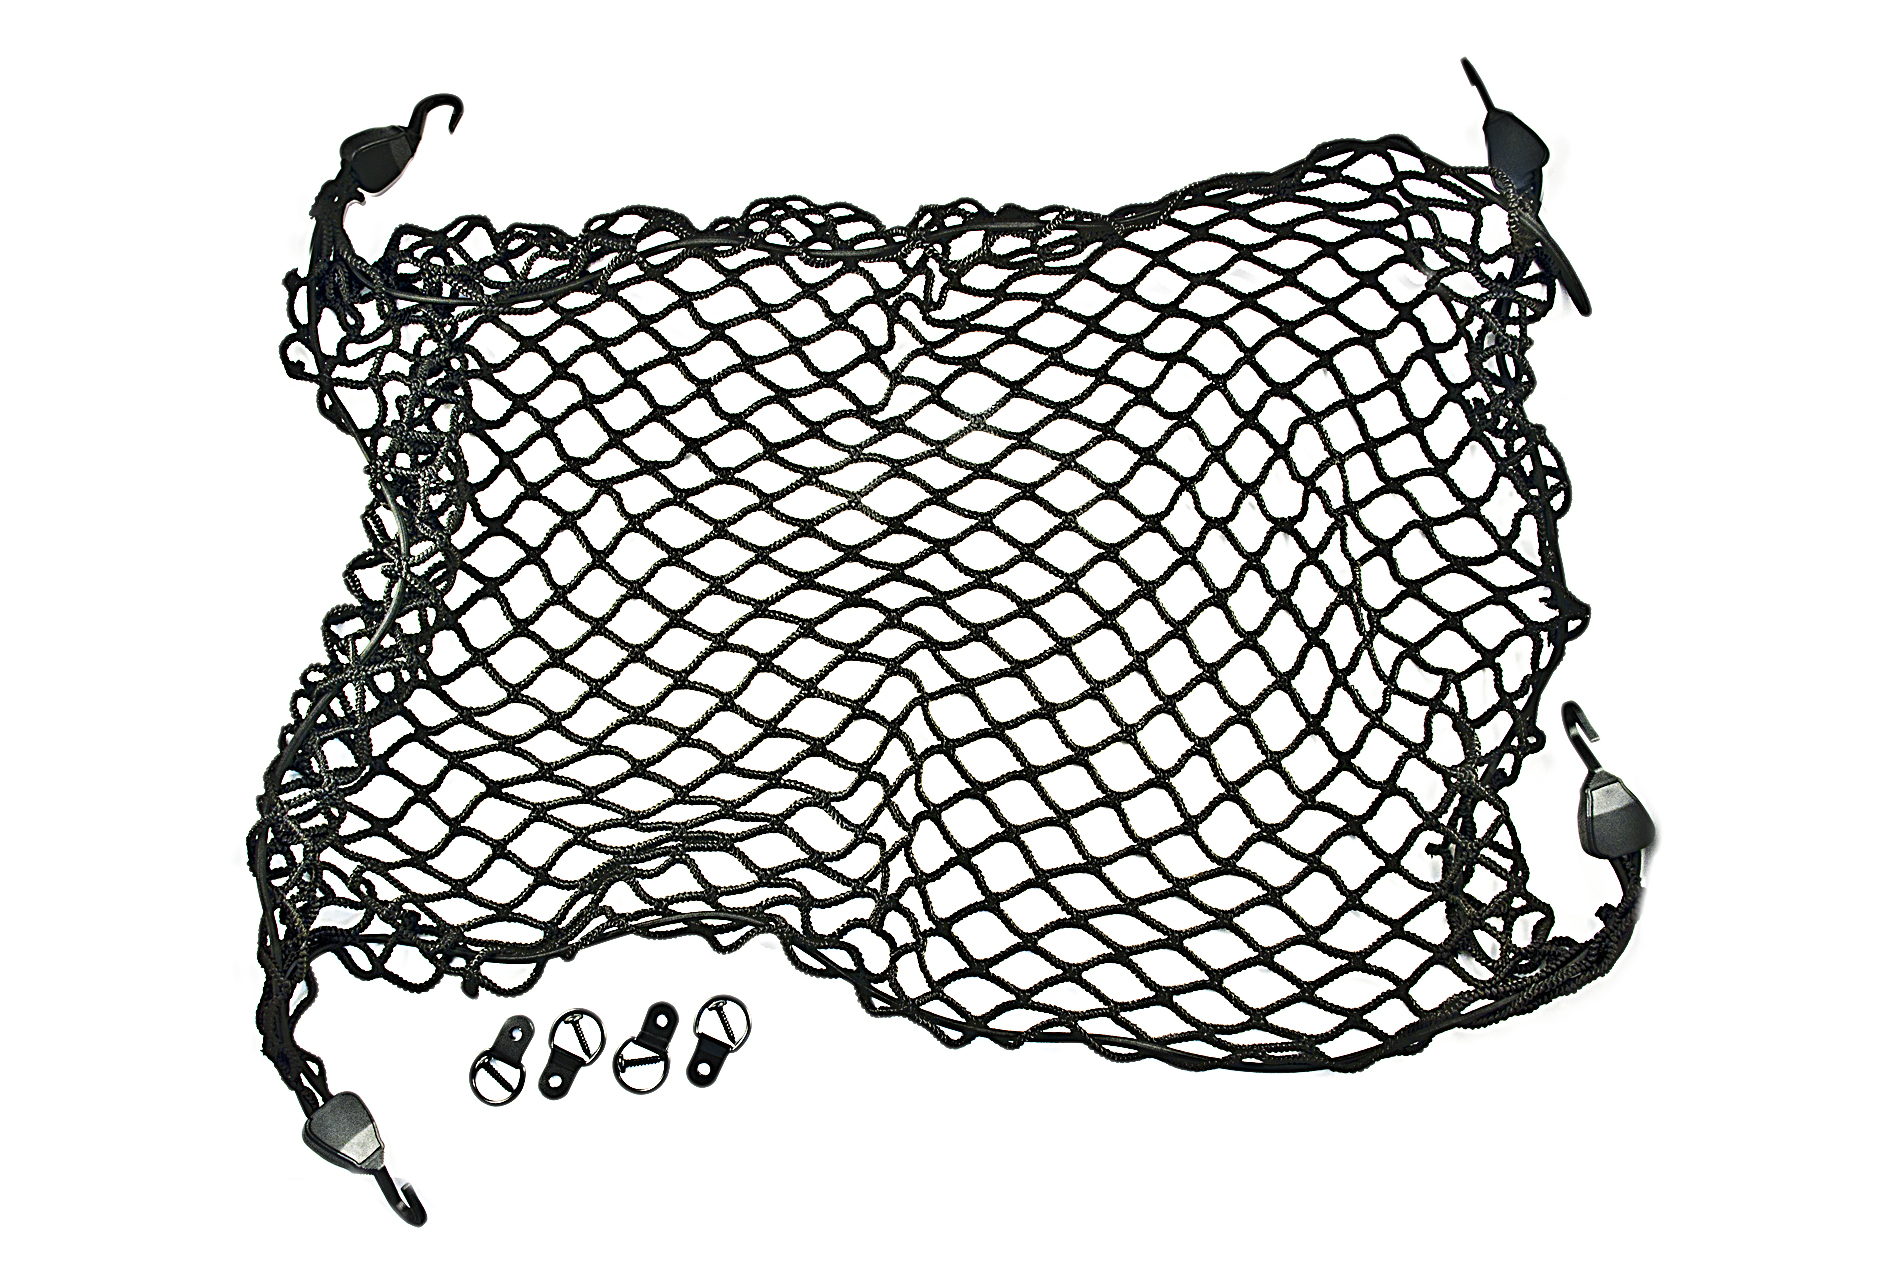 Free Net Download Free Clip Art Free Clip Art On Clipart